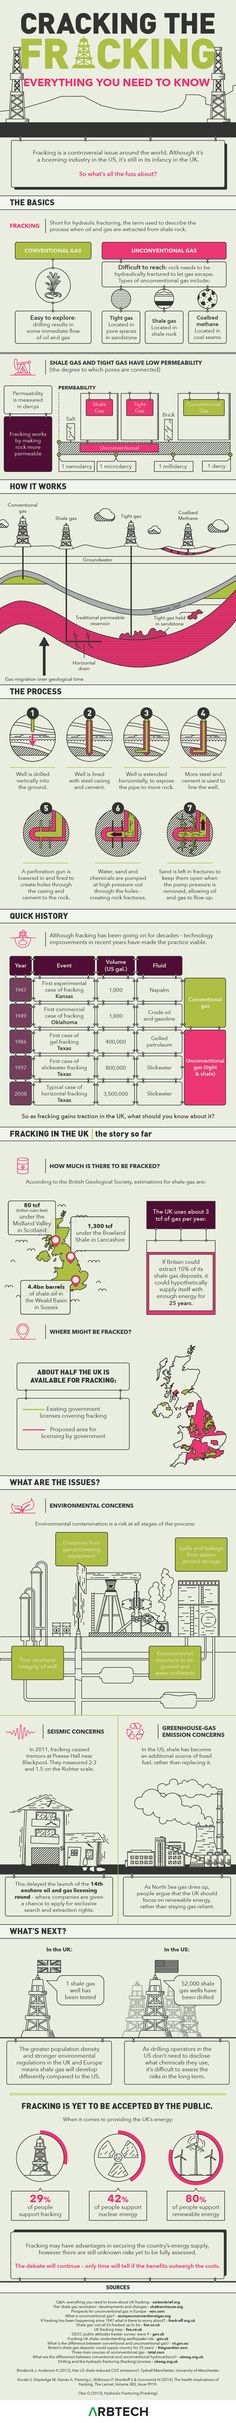 Cracking the Fracking: Everything You Need to Know #Infographic